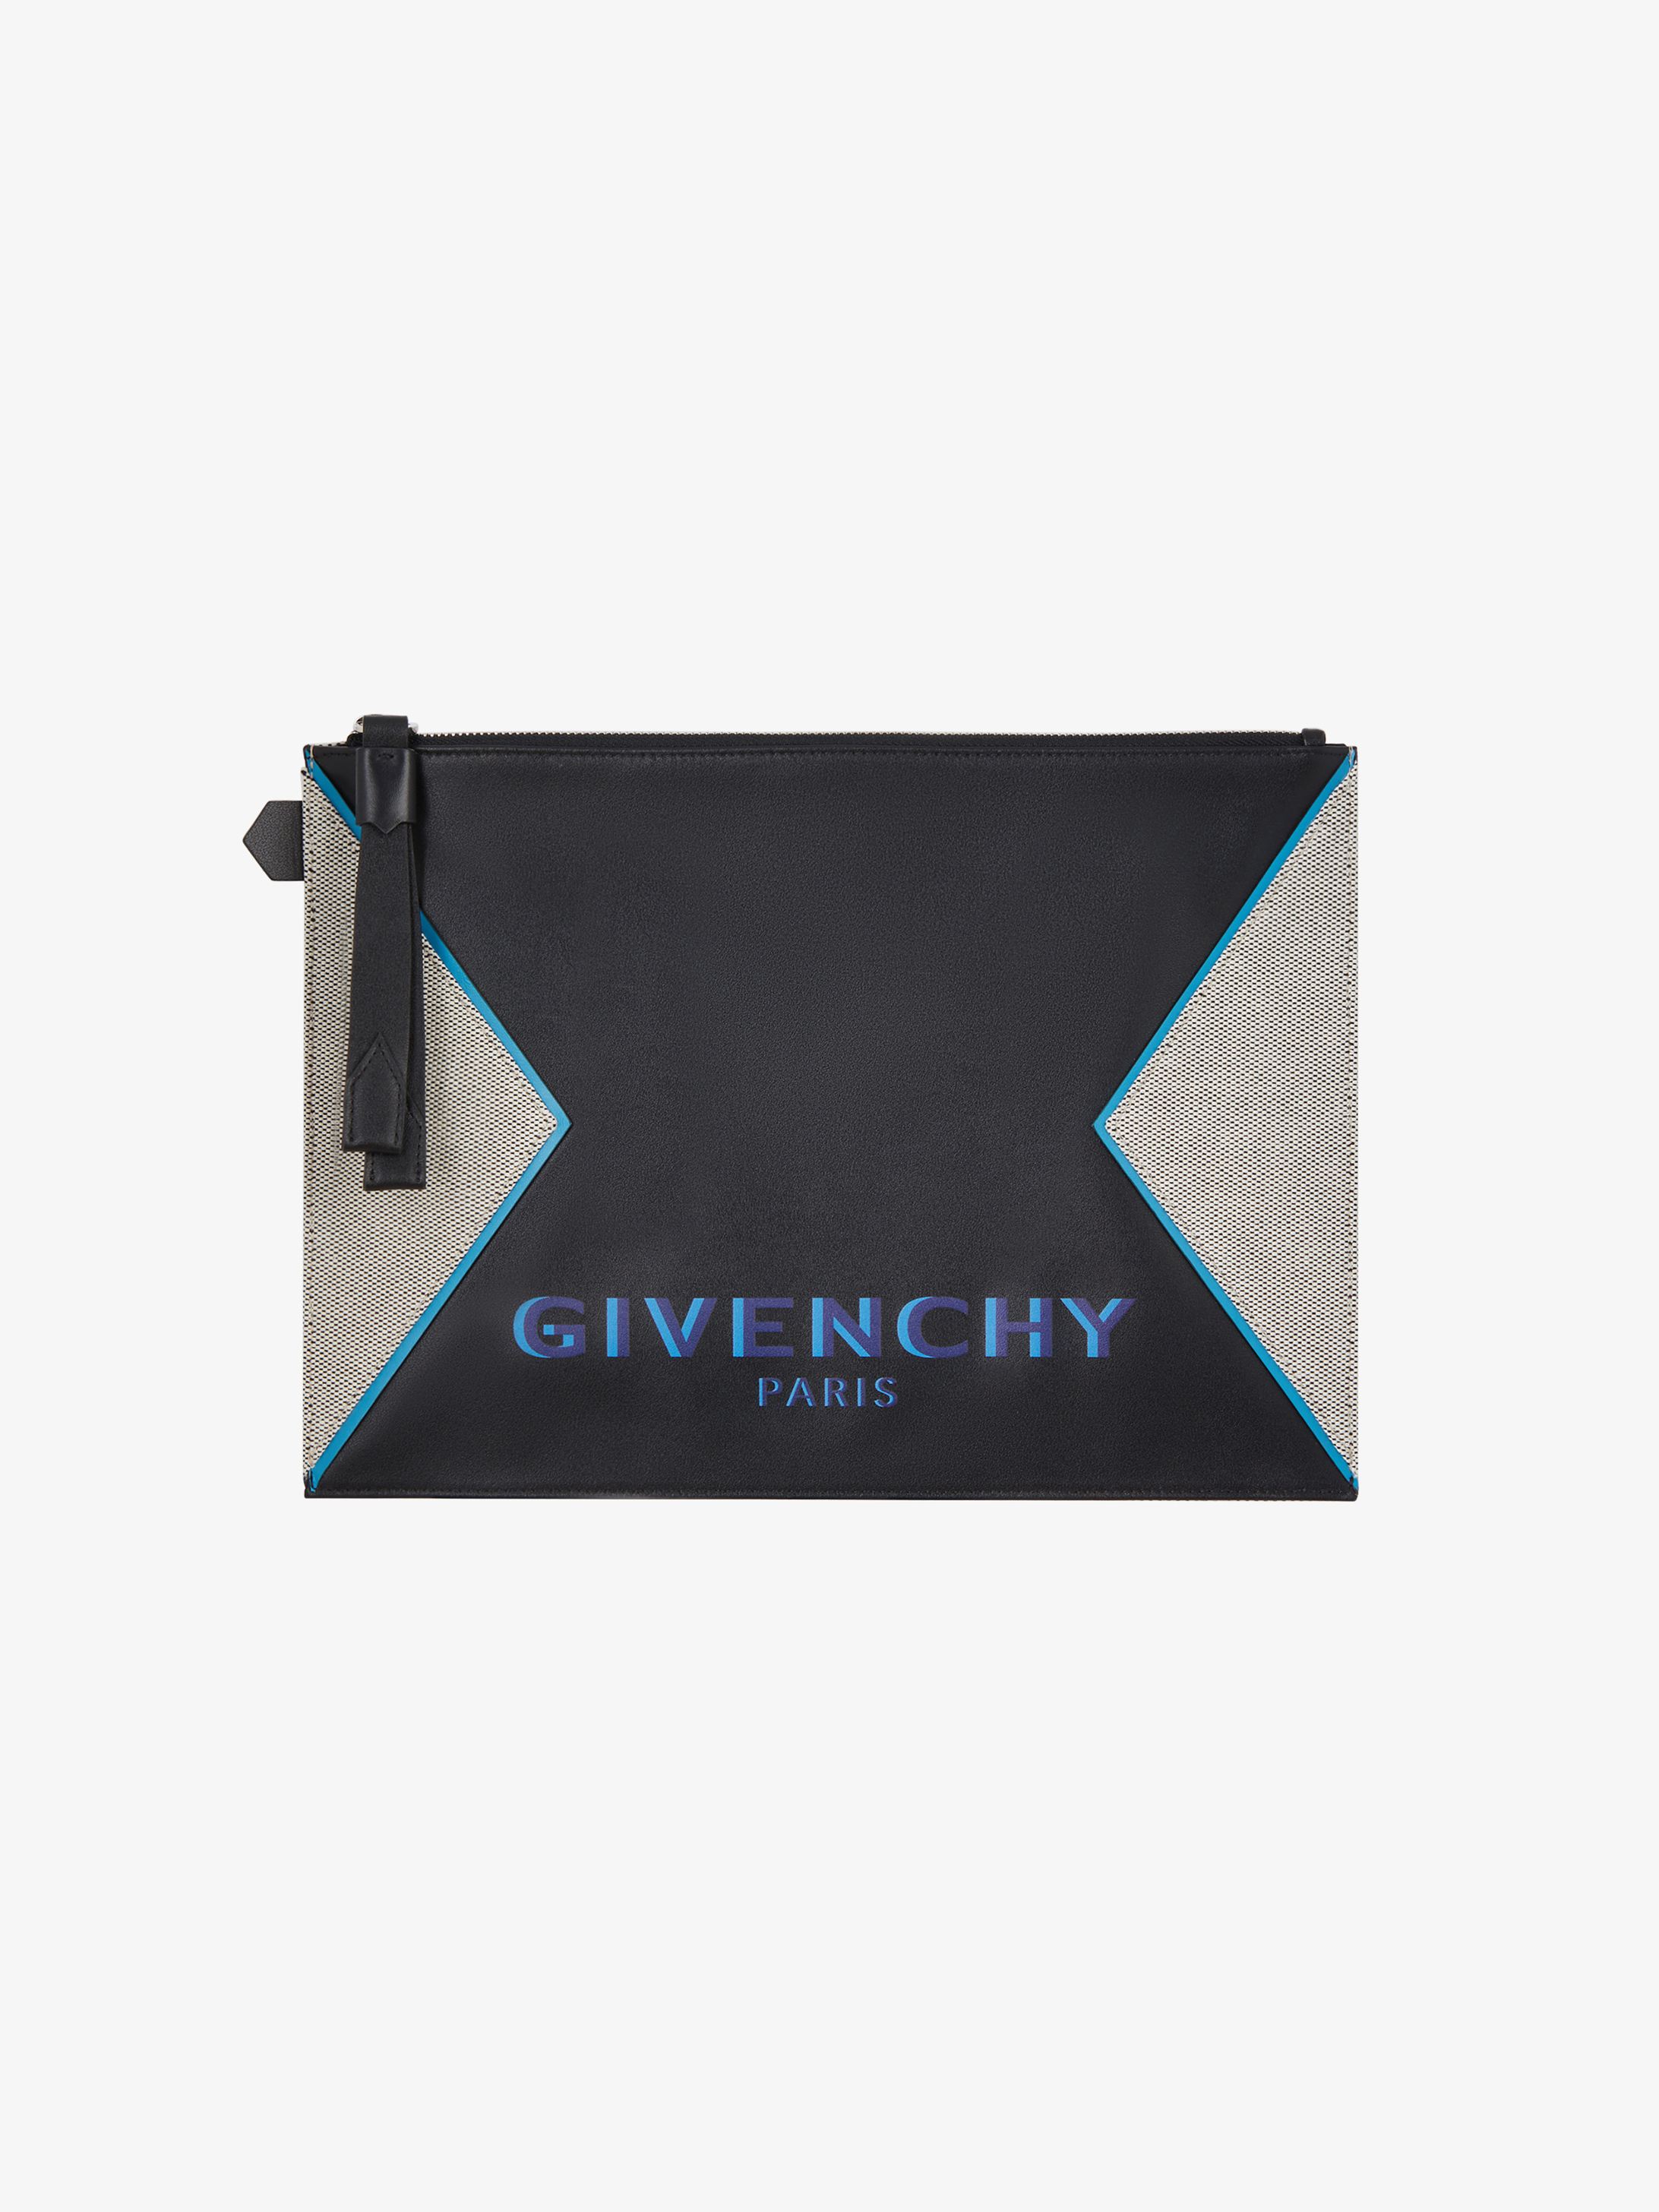 GIVENCHY PARIS large pouch in leather and canvas